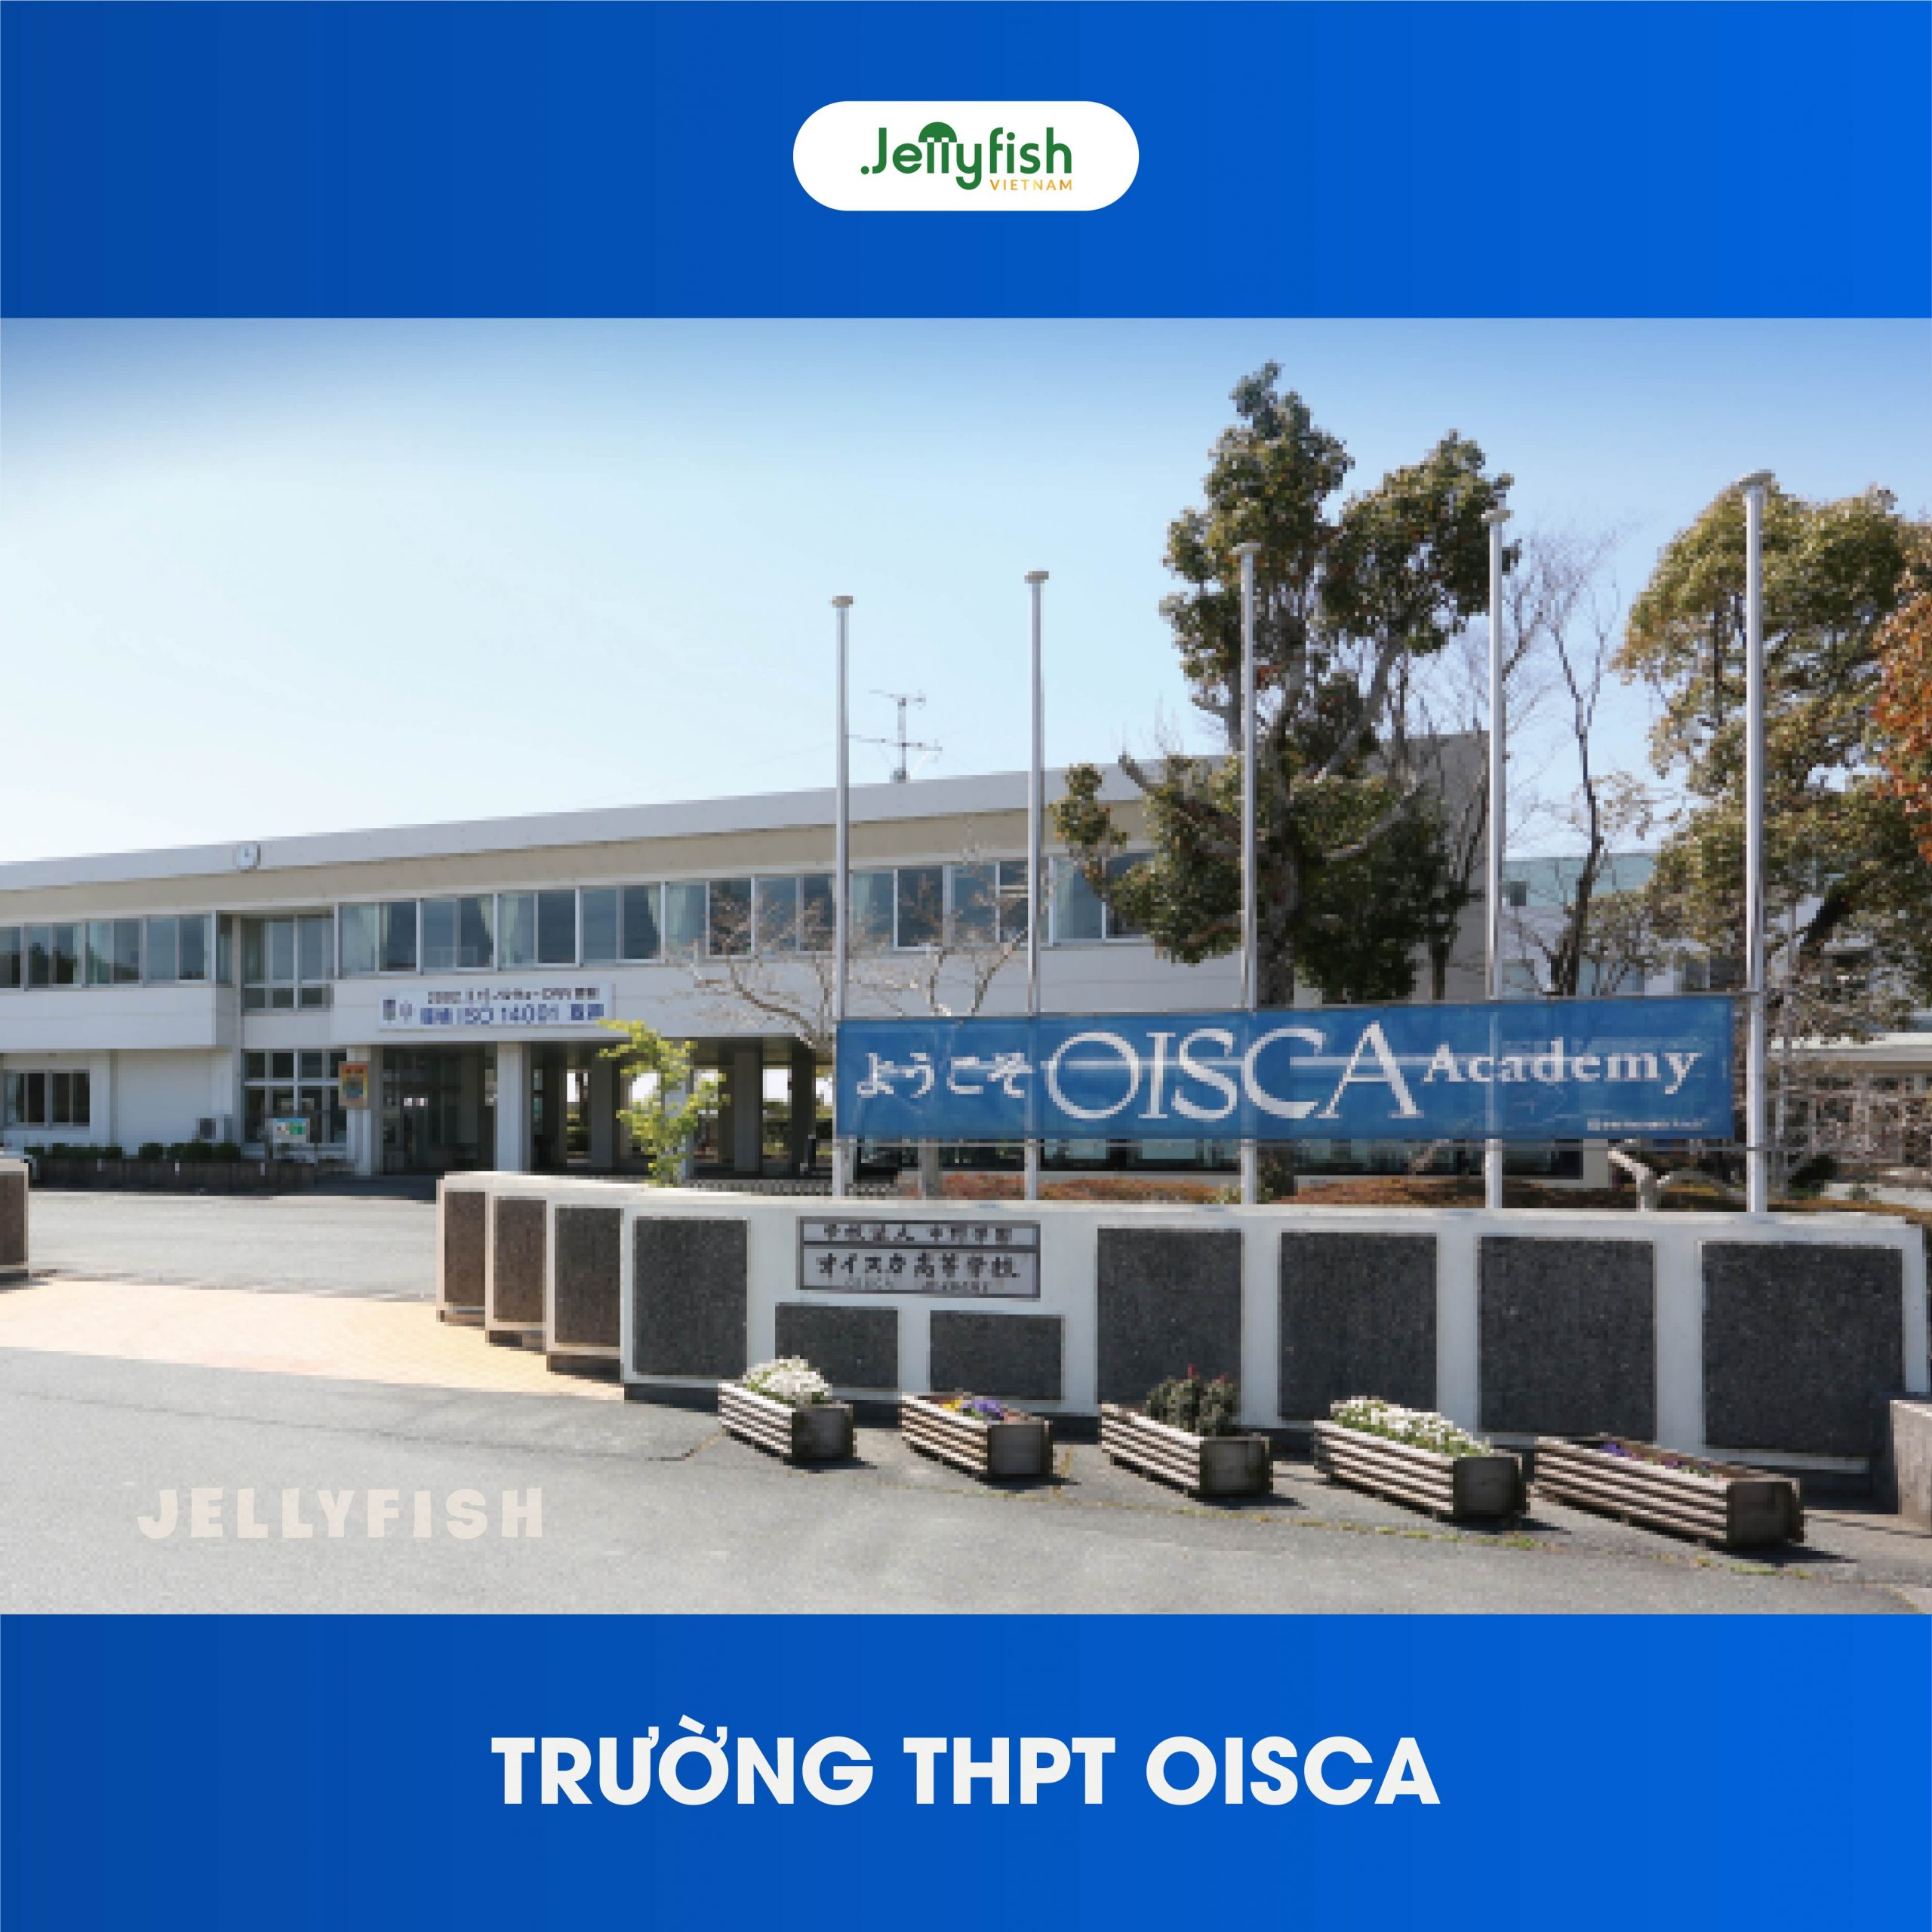 Trường THPT Oisca